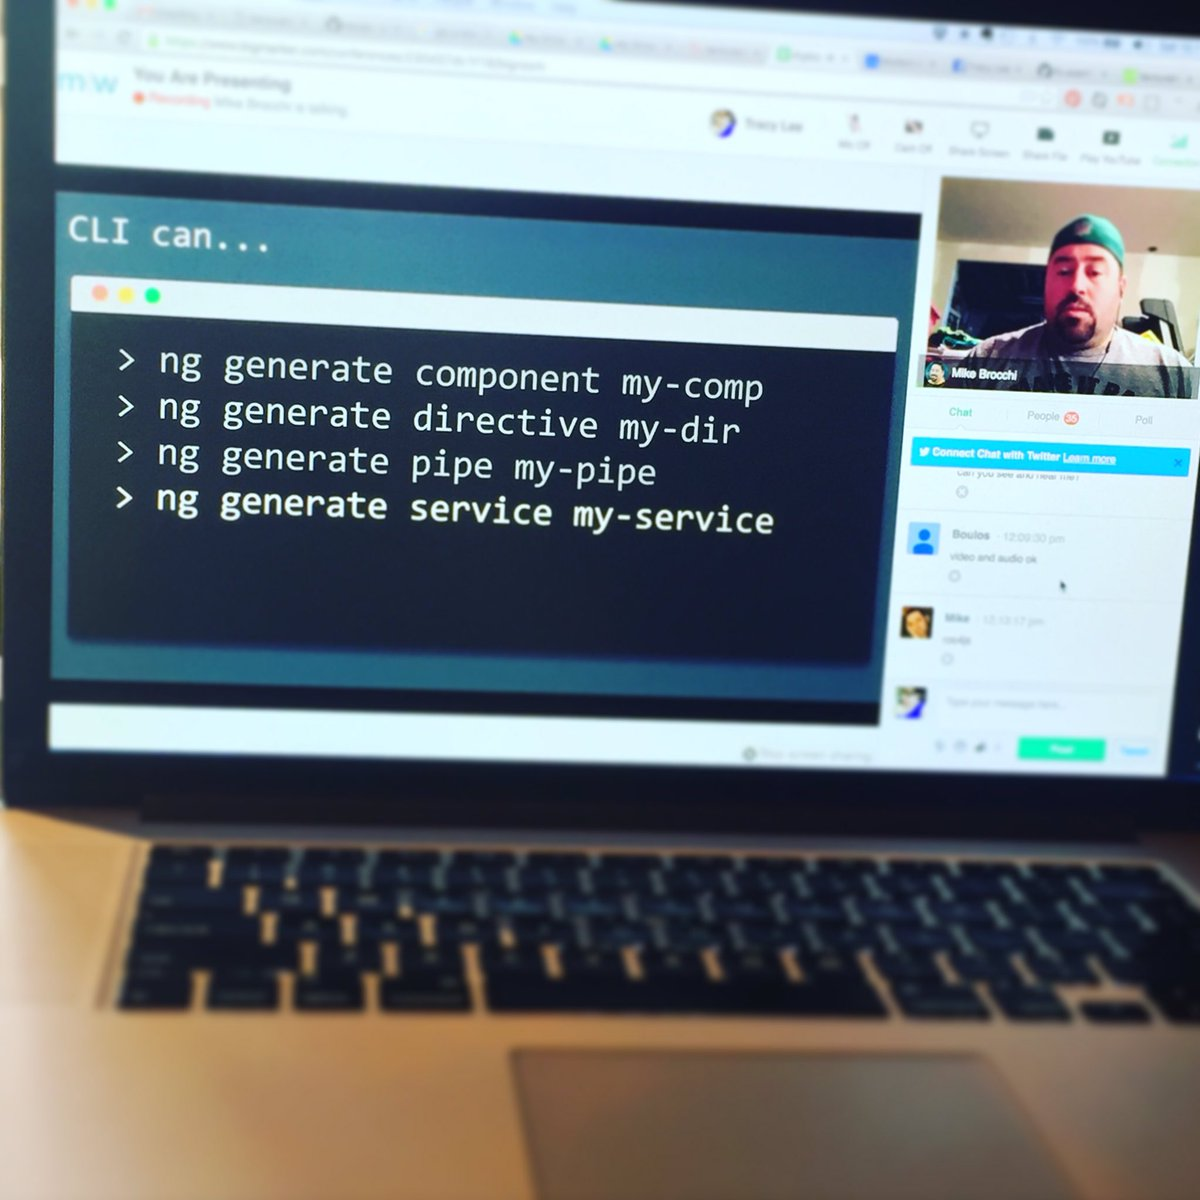 Watching broccoli @brocco give an #angularcli talk on @modernweb_ this morning! #angularjs #angular2 https://t.co/FRShCTzpkx